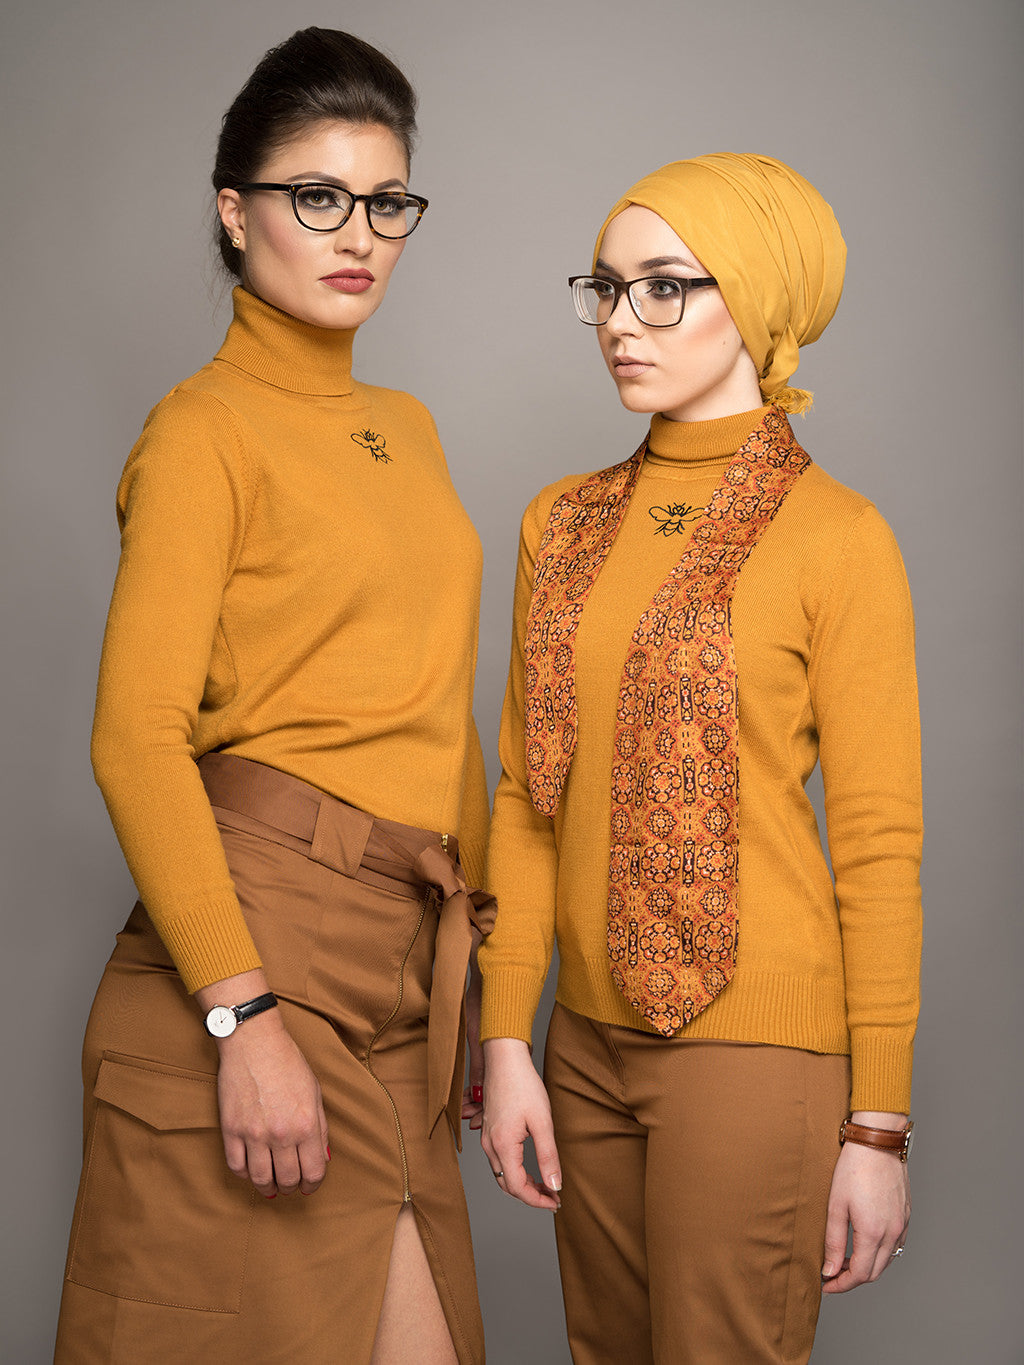 Mustard Turtleneck Sweater - Sold Out